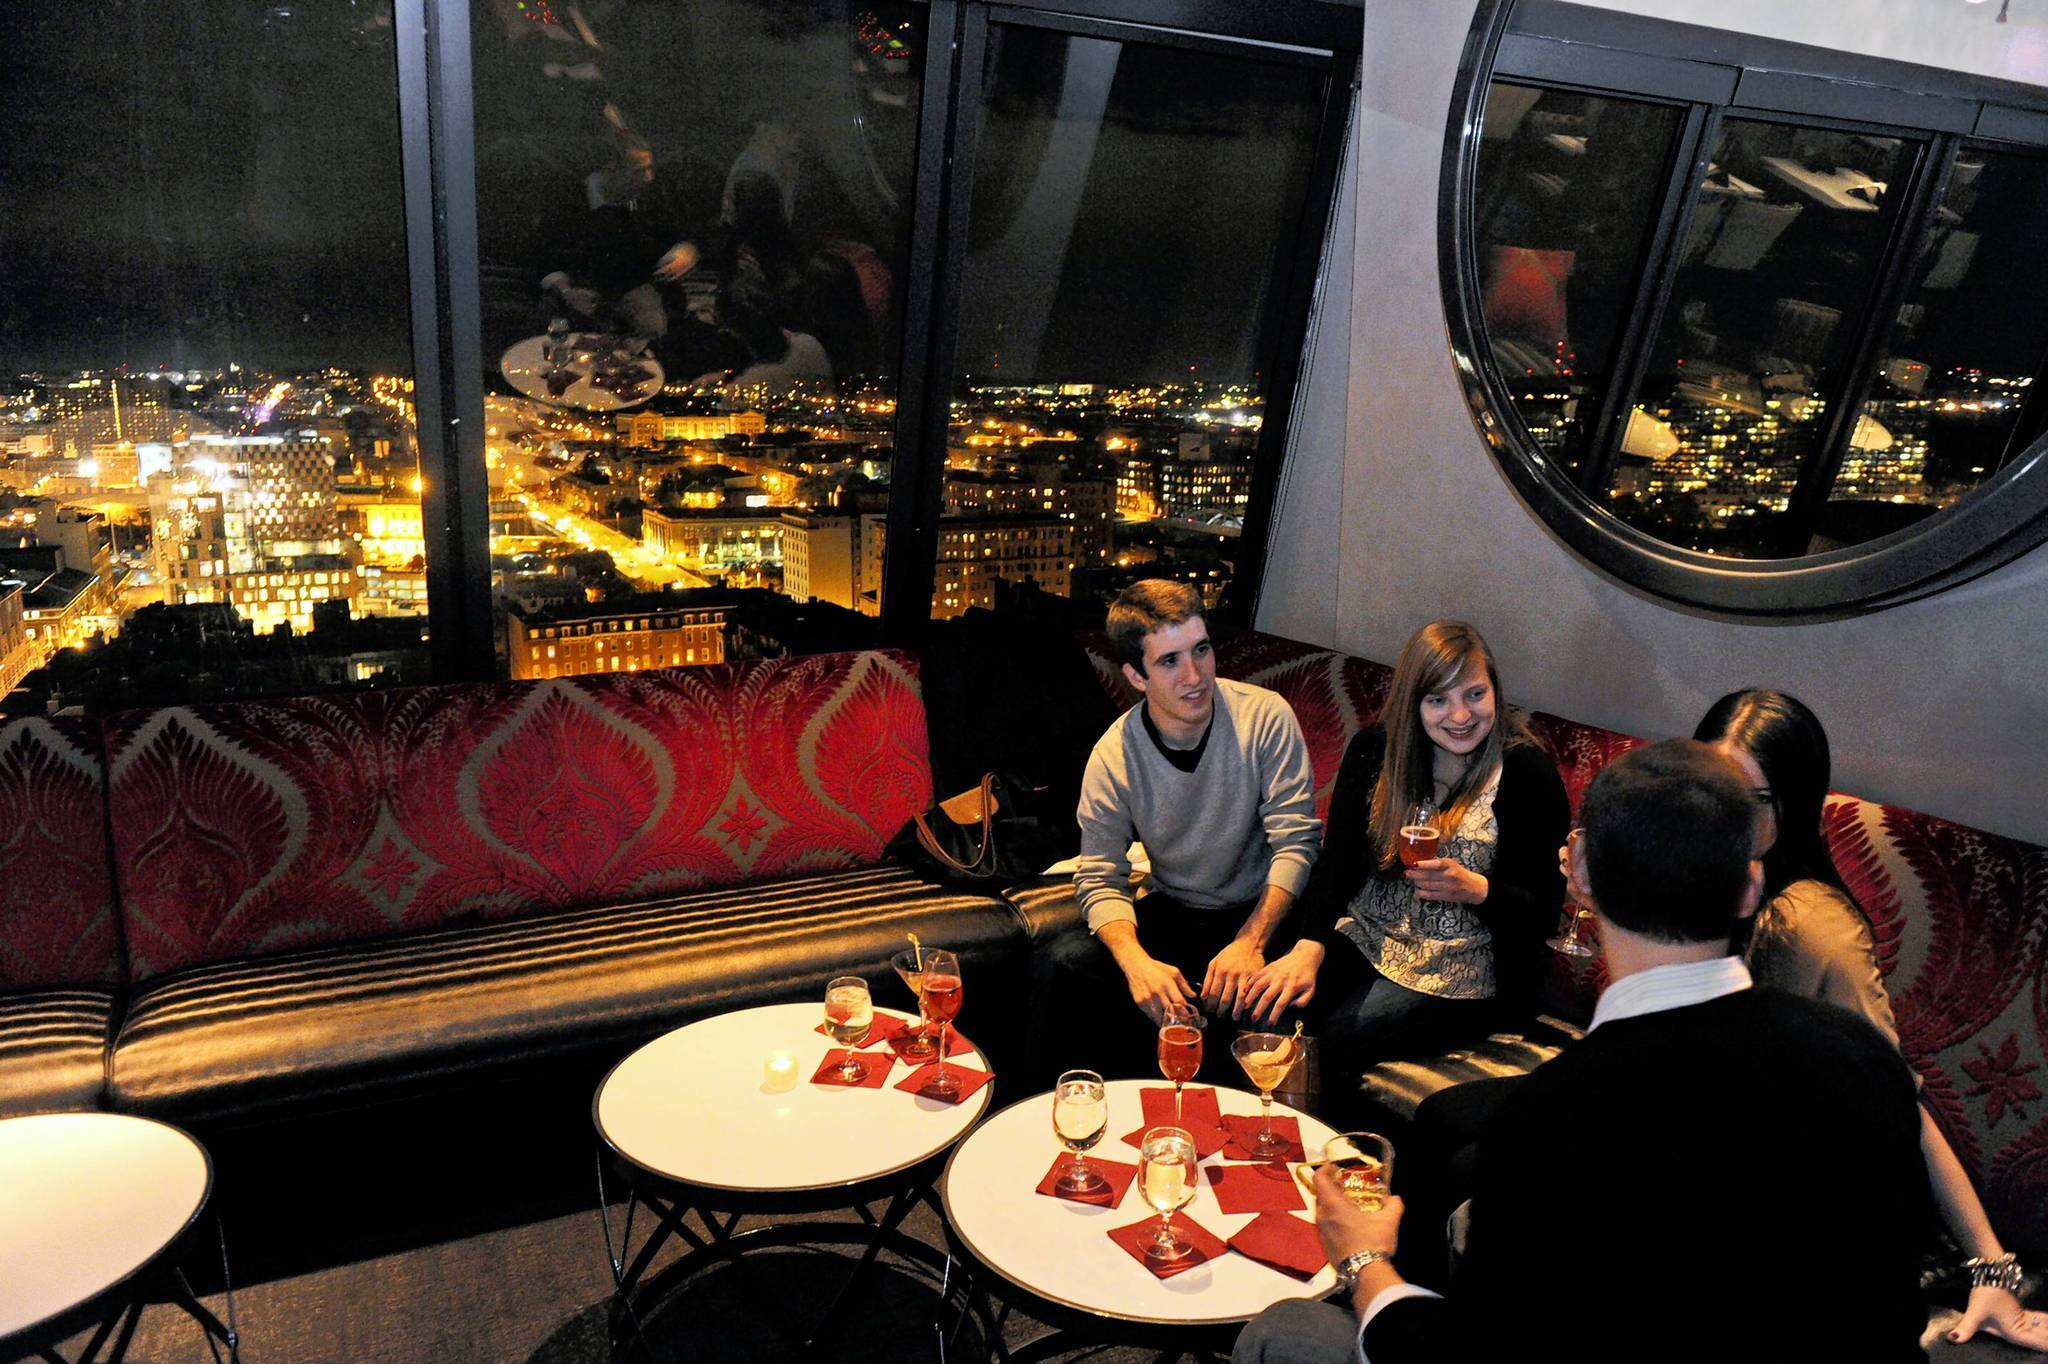 Customers lounge at the 13th Floor.